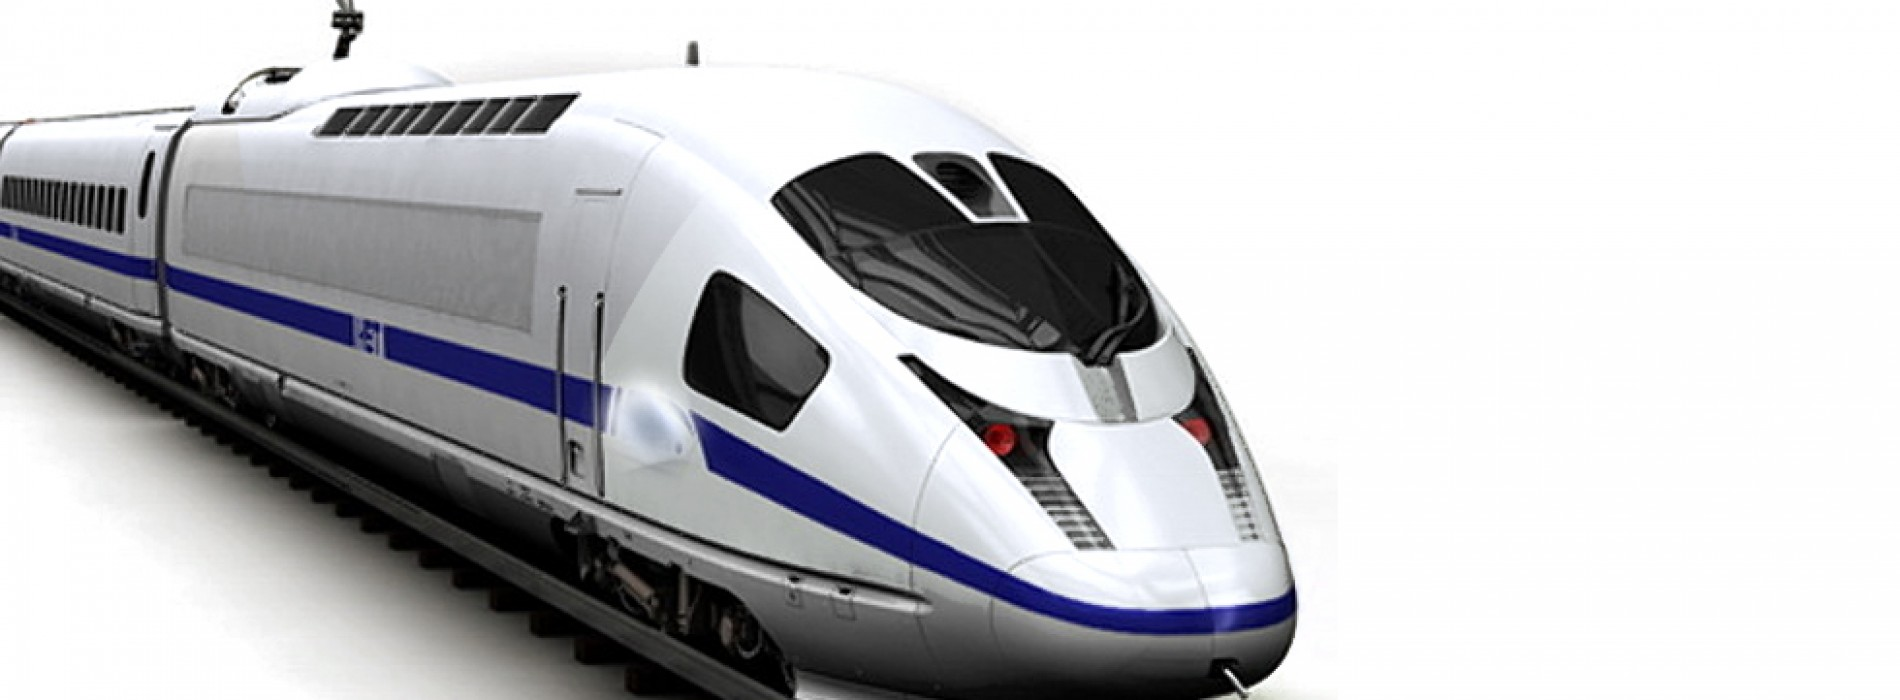 Gujarat government signs Rs 77,000 crore MoU with railways for bullet train